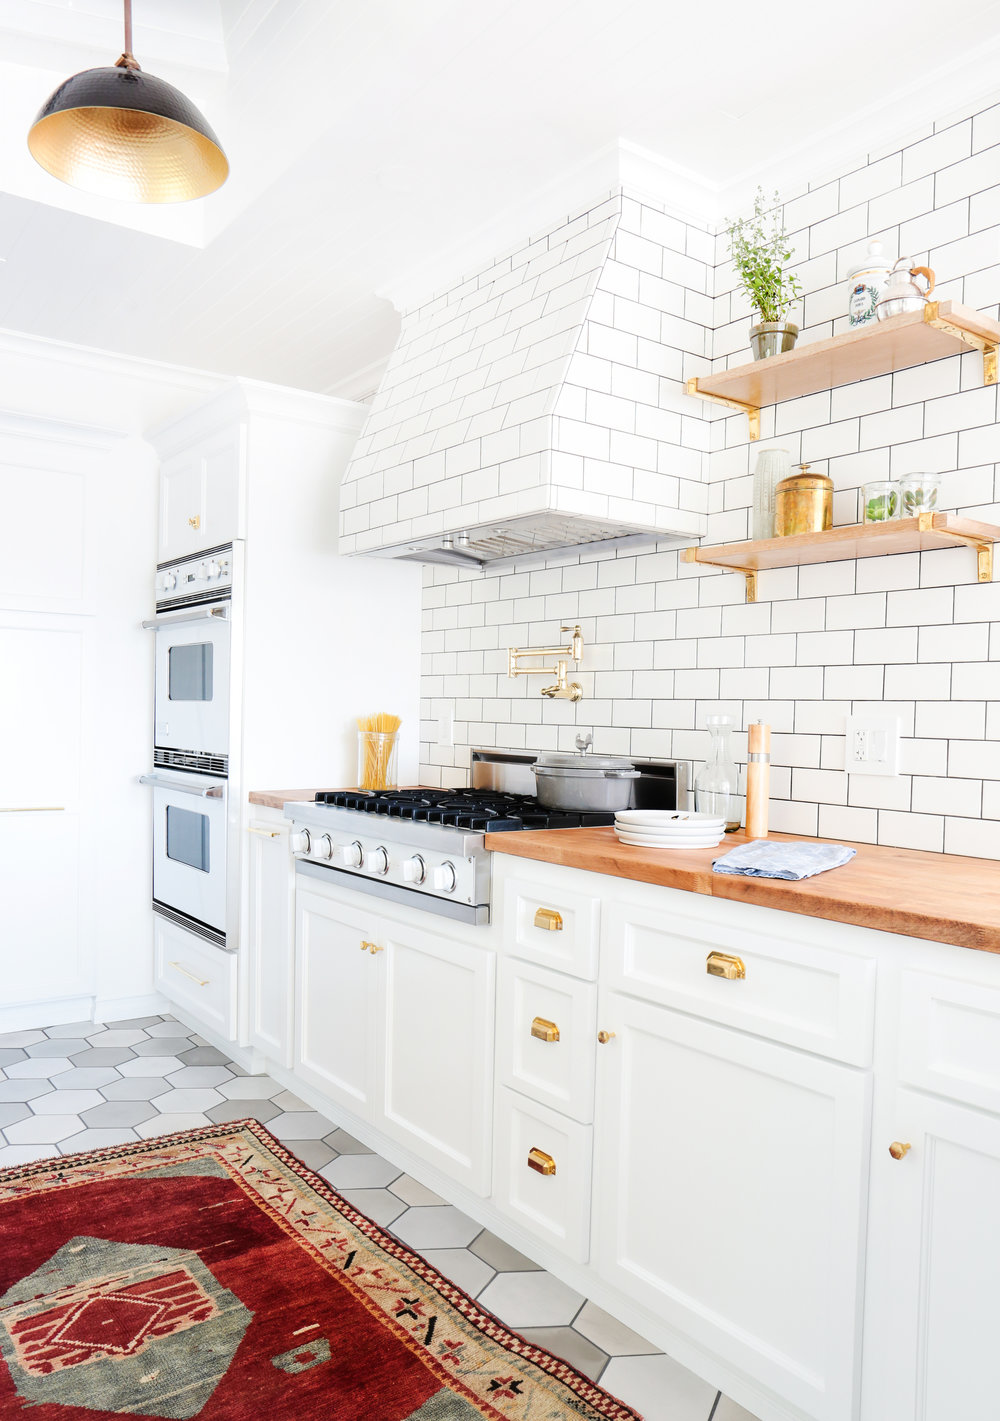 These 12 White Kitchen Cabinet Ideas Speak Volumes - By Shelby Deering | February 13, 2019White kitchen cabinets are kind of like classic cars, they never go out of style. Simply scroll through your Instagram feed, and you'll see a parade of bright, airy kitchens, all outfitted with gorgeous ivory-hued cabinetry. And we love seeing the different ways people are making their kitchens stand out from the alabaster crowd. For your consideration, here are 12 attention-grabbing white kitchen cabinet ideas that will make your culinary space pop.